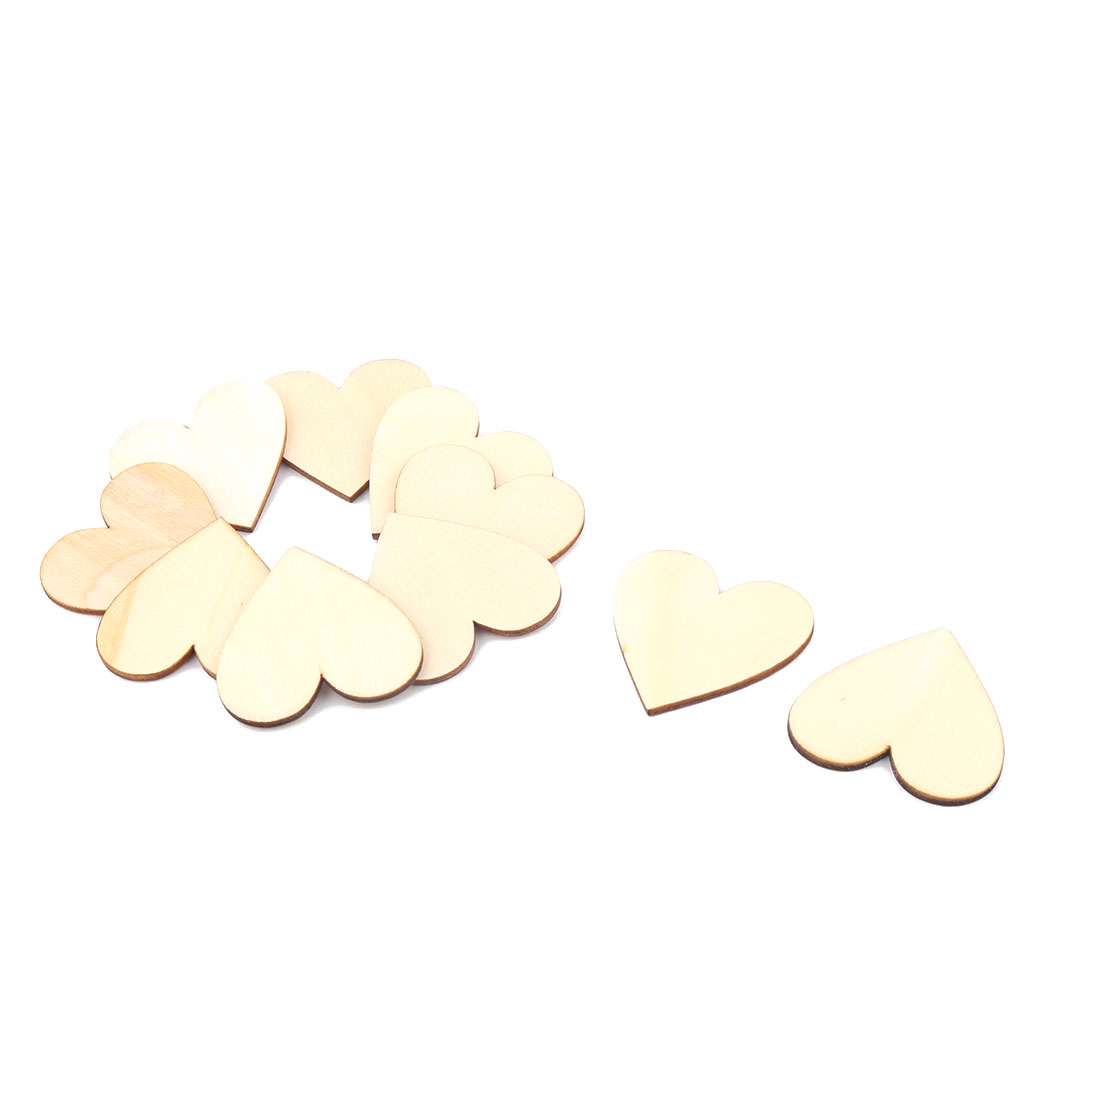 Wooden Love Heart Shaped Wedding Decor Art Craft DIY Accessories Beige 50 x 45mm 10 Pcs